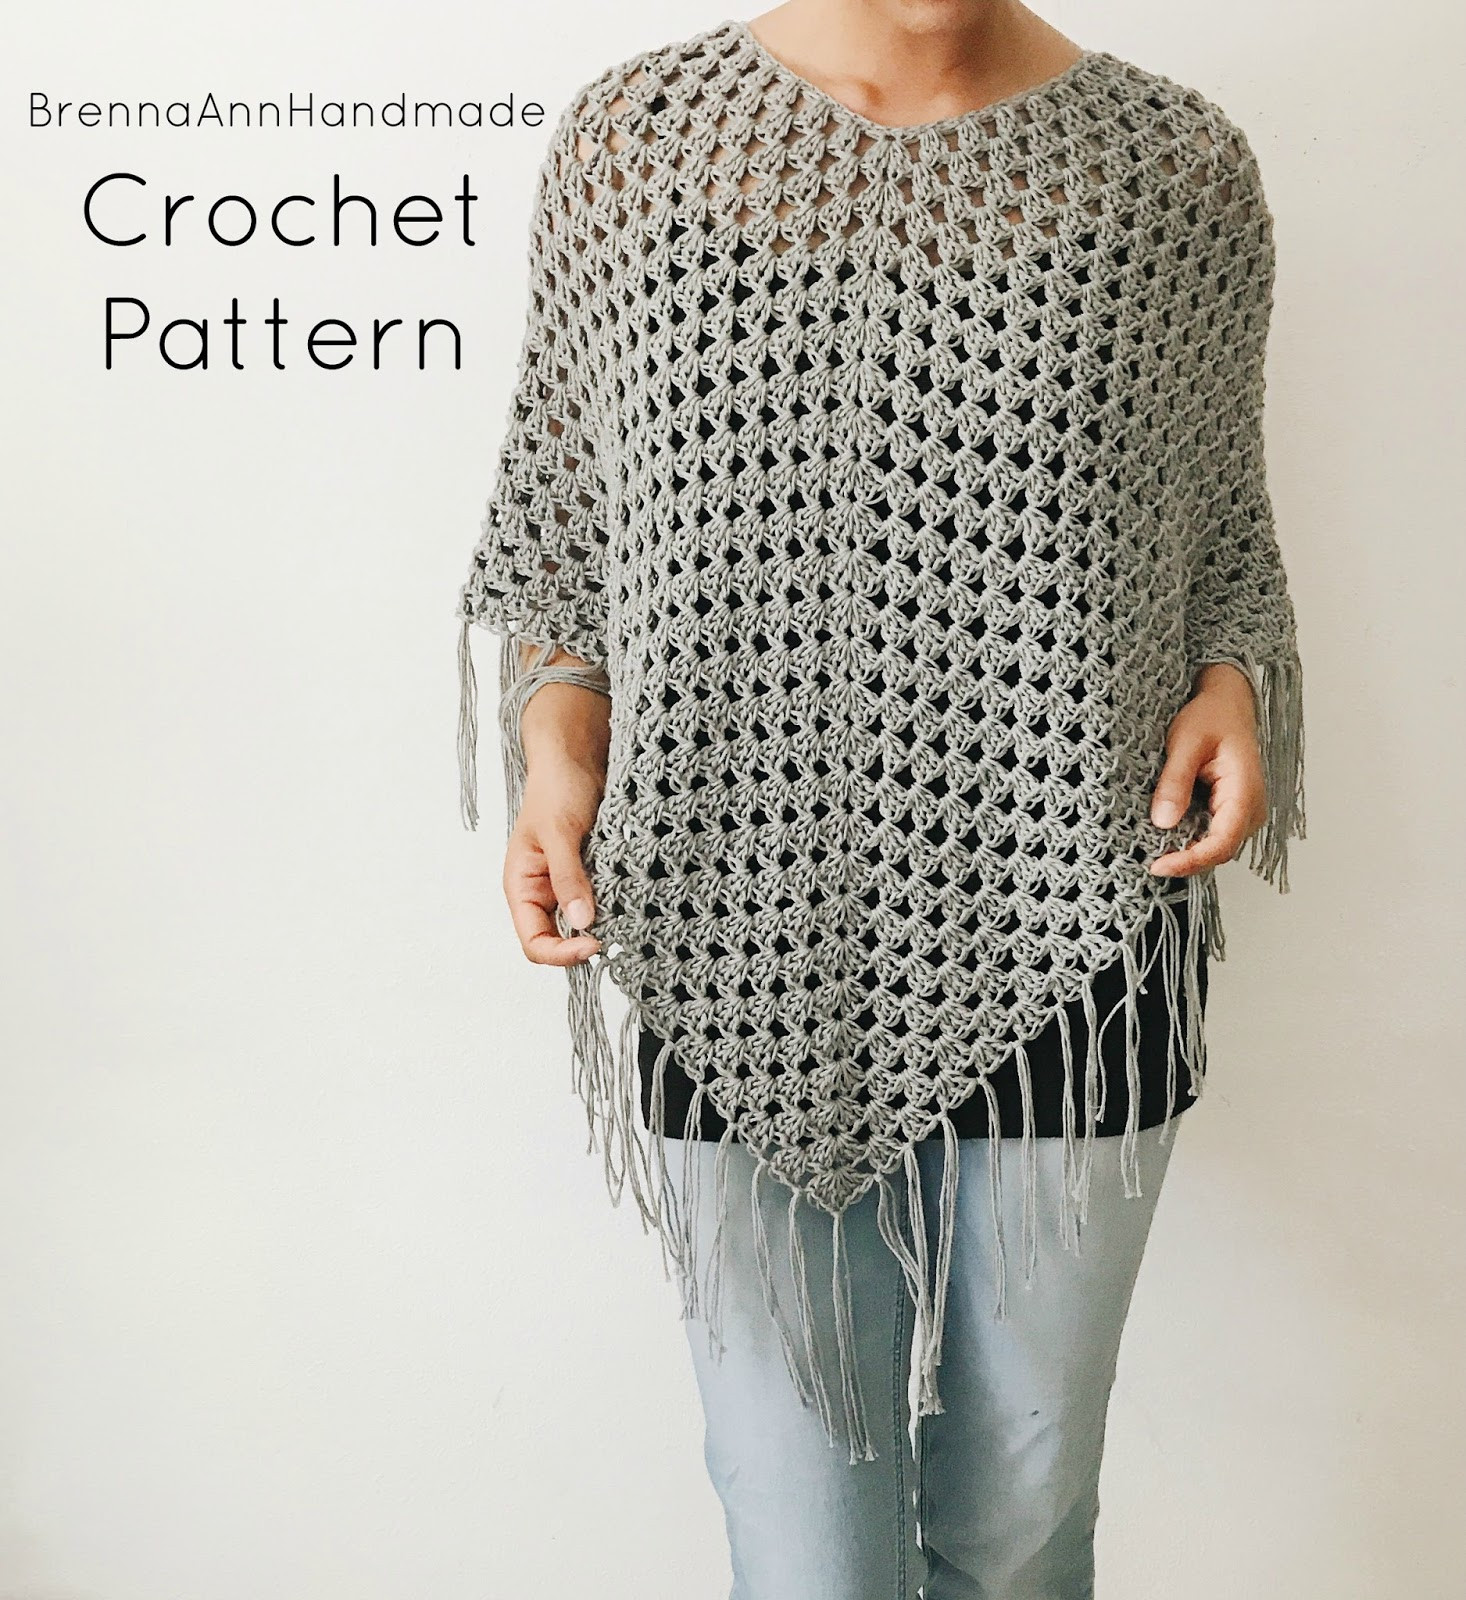 New Crochet Patterns Unique Brenna Ann Handmade New Crochet Pattern the Wildflower Of Perfect 50 Ideas New Crochet Patterns